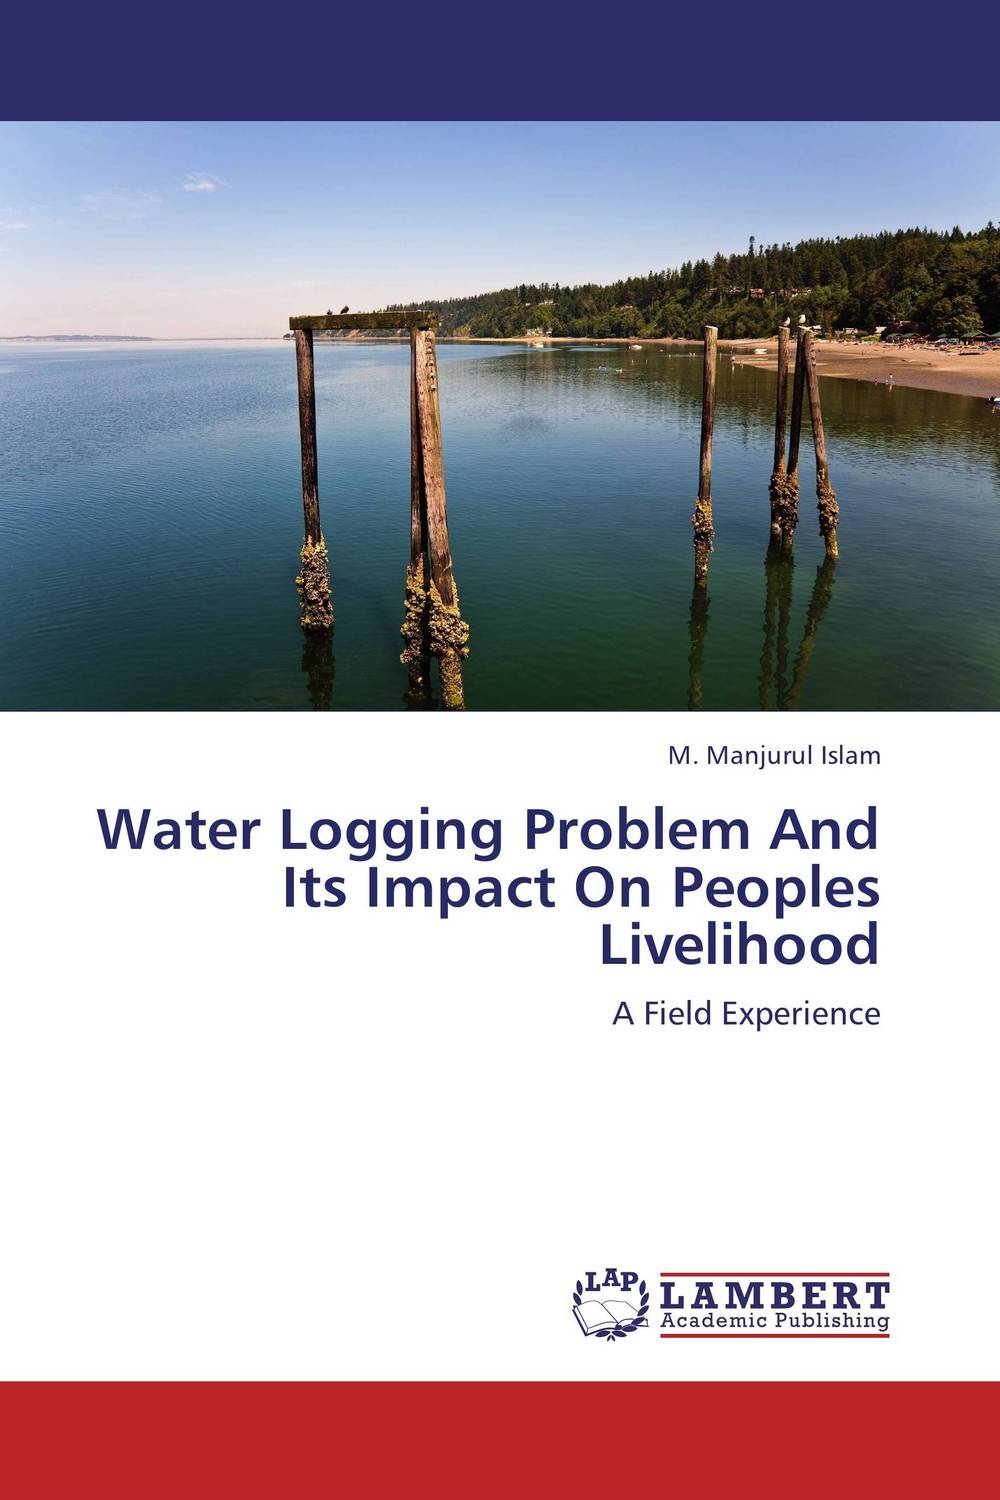 Water Logging Problem And Its Impact On Peoples Livelihood jamaica jamaica no problem